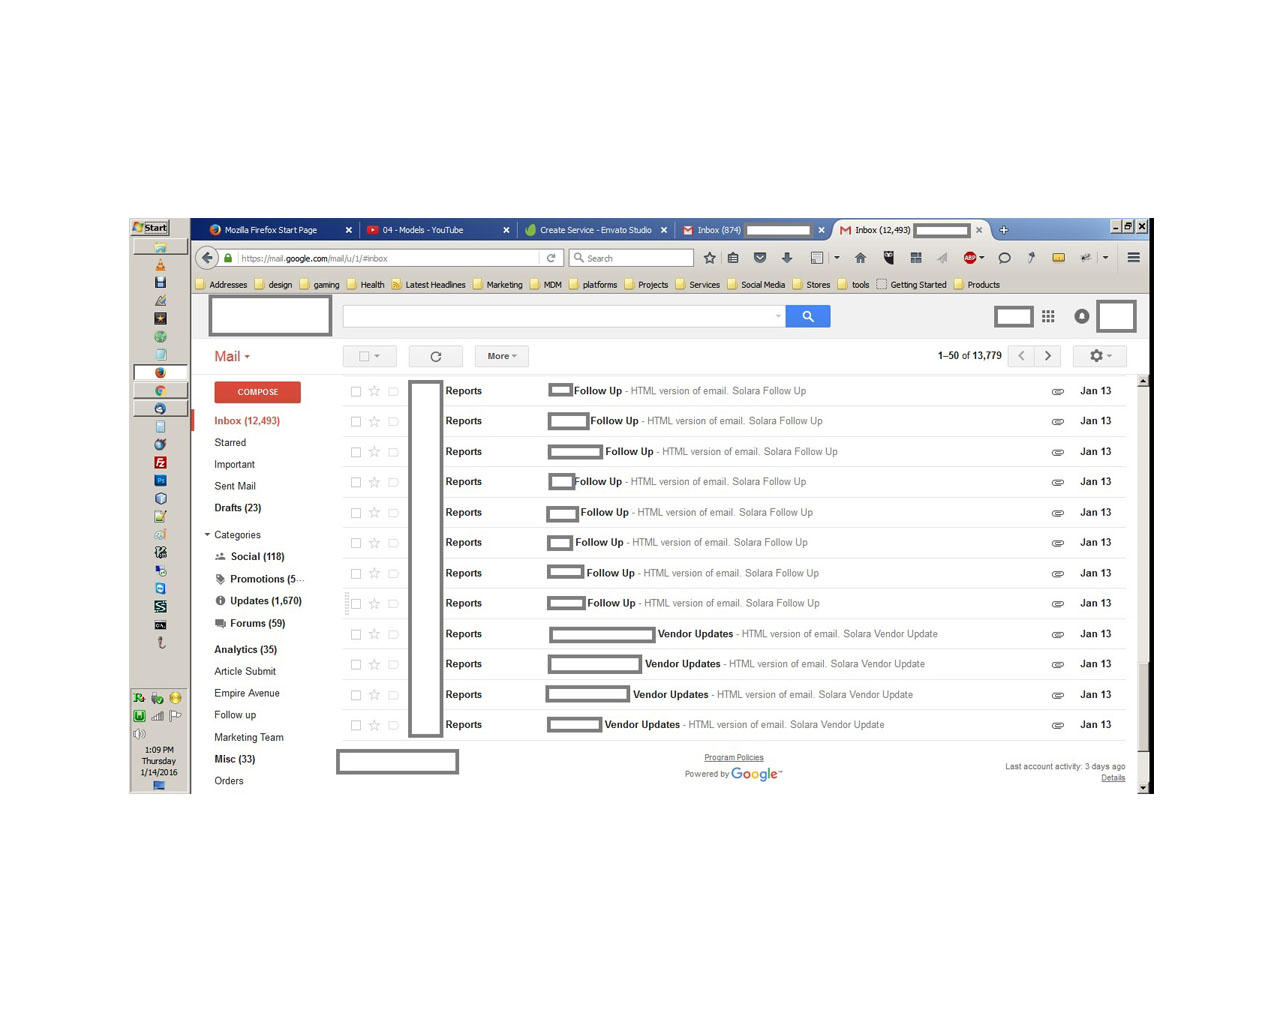 Email Daily Progress Reports Automatically by magneticcanvas - 95618